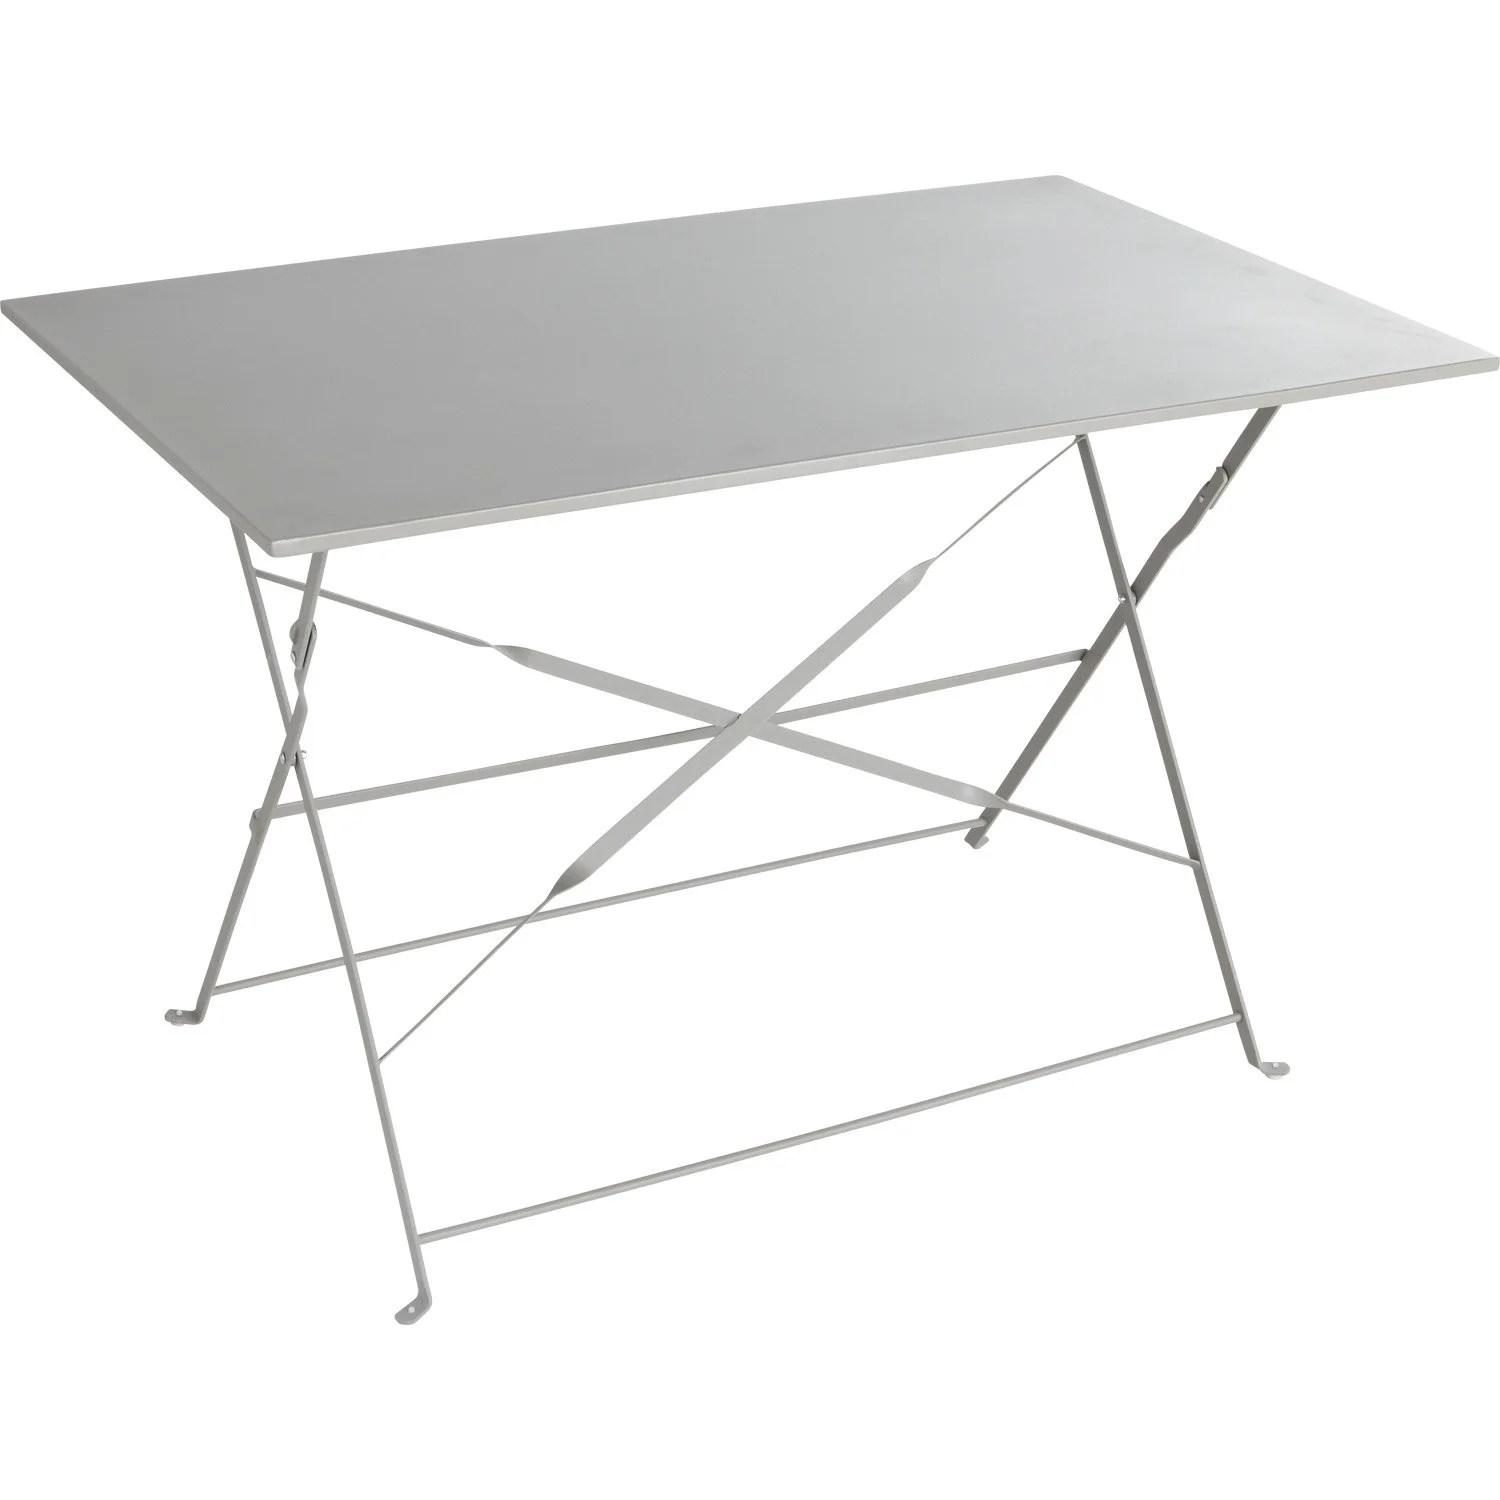 Leroy Merlin Table De Jardin Table De Jardin Naterial Flore Rectangulaire Gris 4